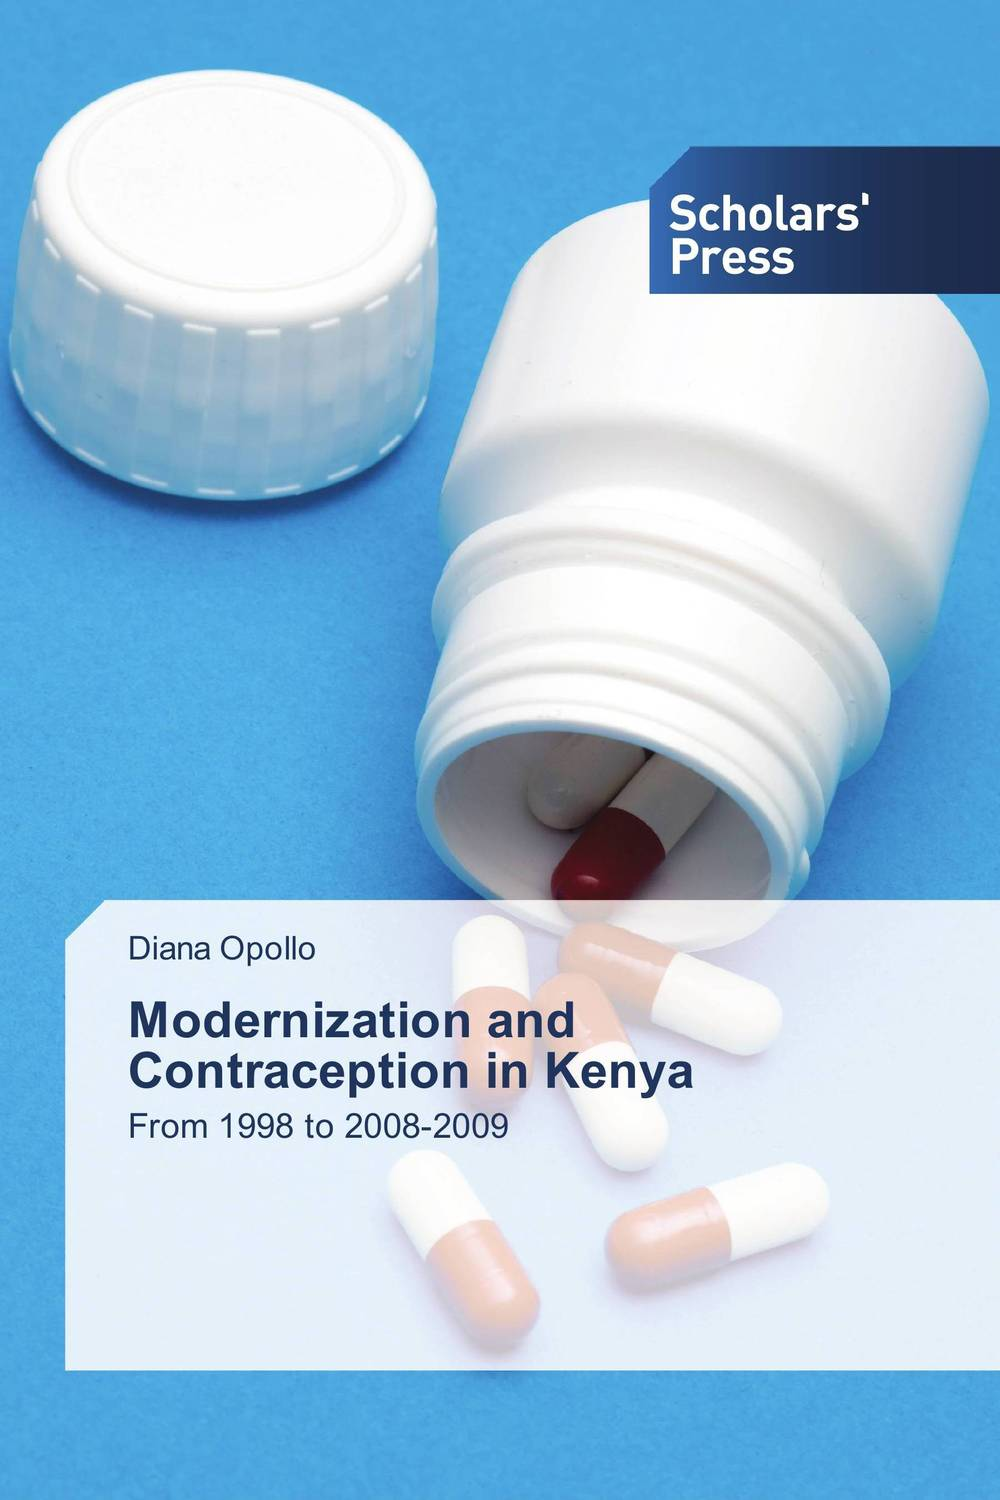 Modernization and Contraception in Kenya martha kerubo obare and omosa mogambi ntabo introduction to correctional services in kenya